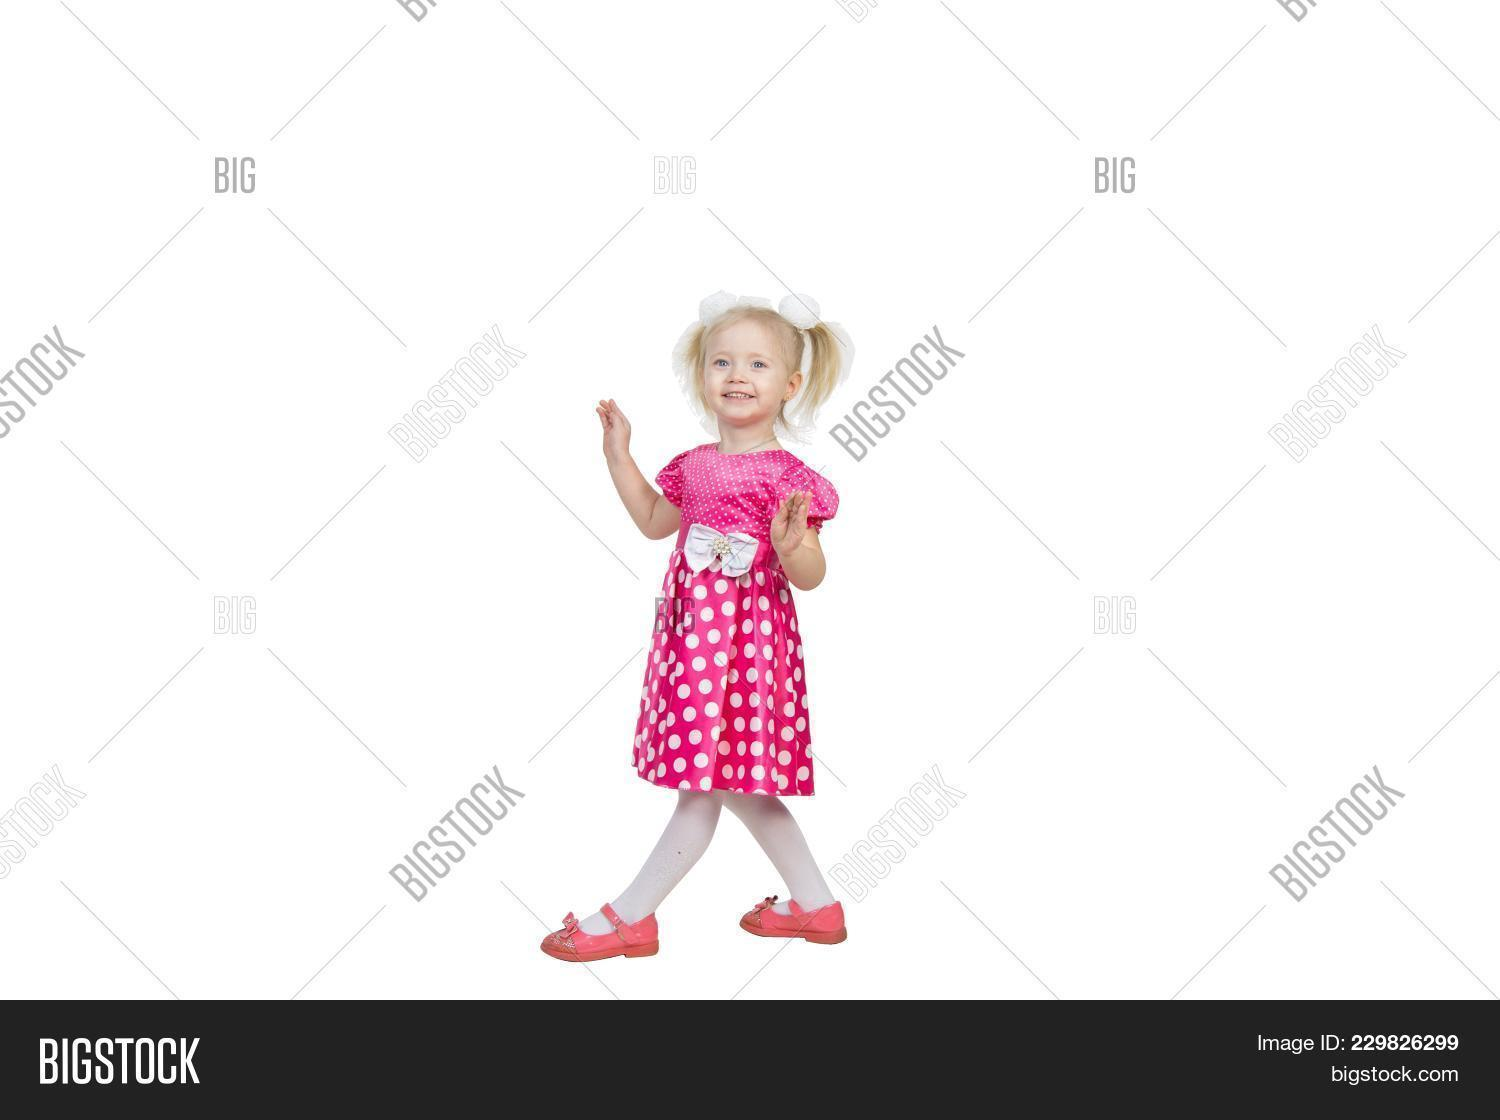 ea449d7e31 Girl 3 years old in a red dress on a transparent background PNG file. Beautiful  little girl in a bright pink dress with bows in her hair